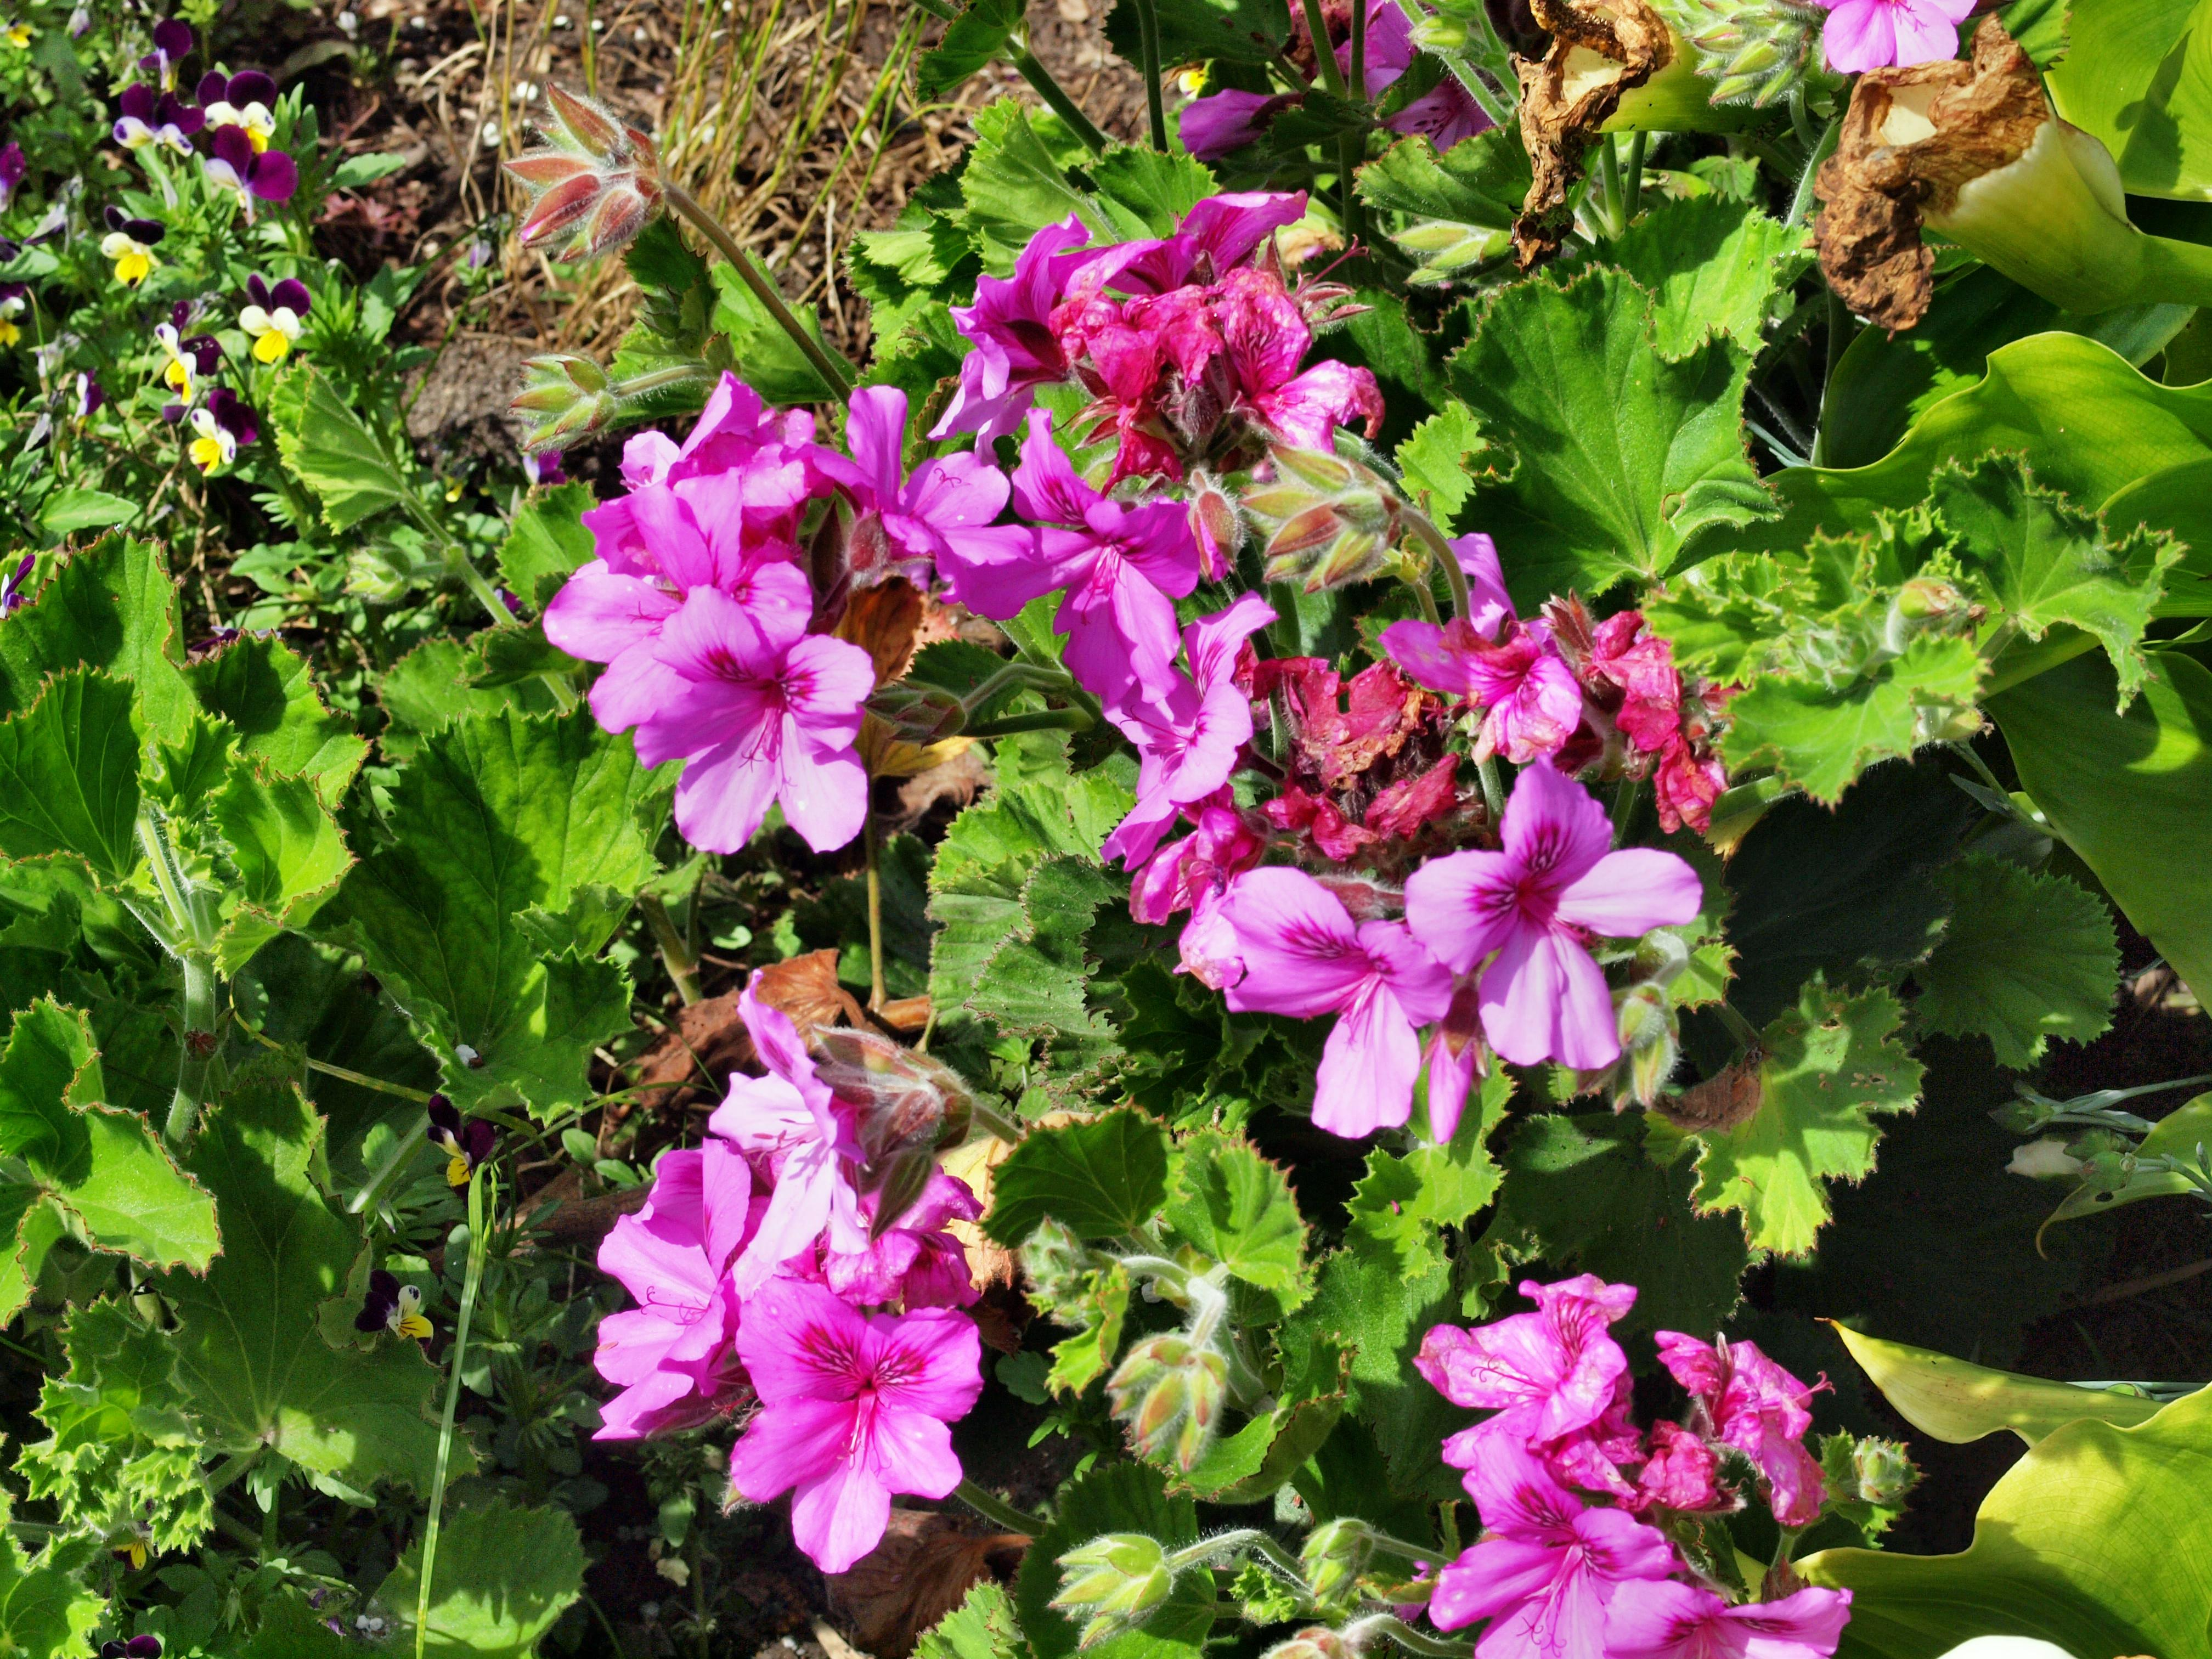 This should be Pelargonium-10.jpeg.  Is it missing?